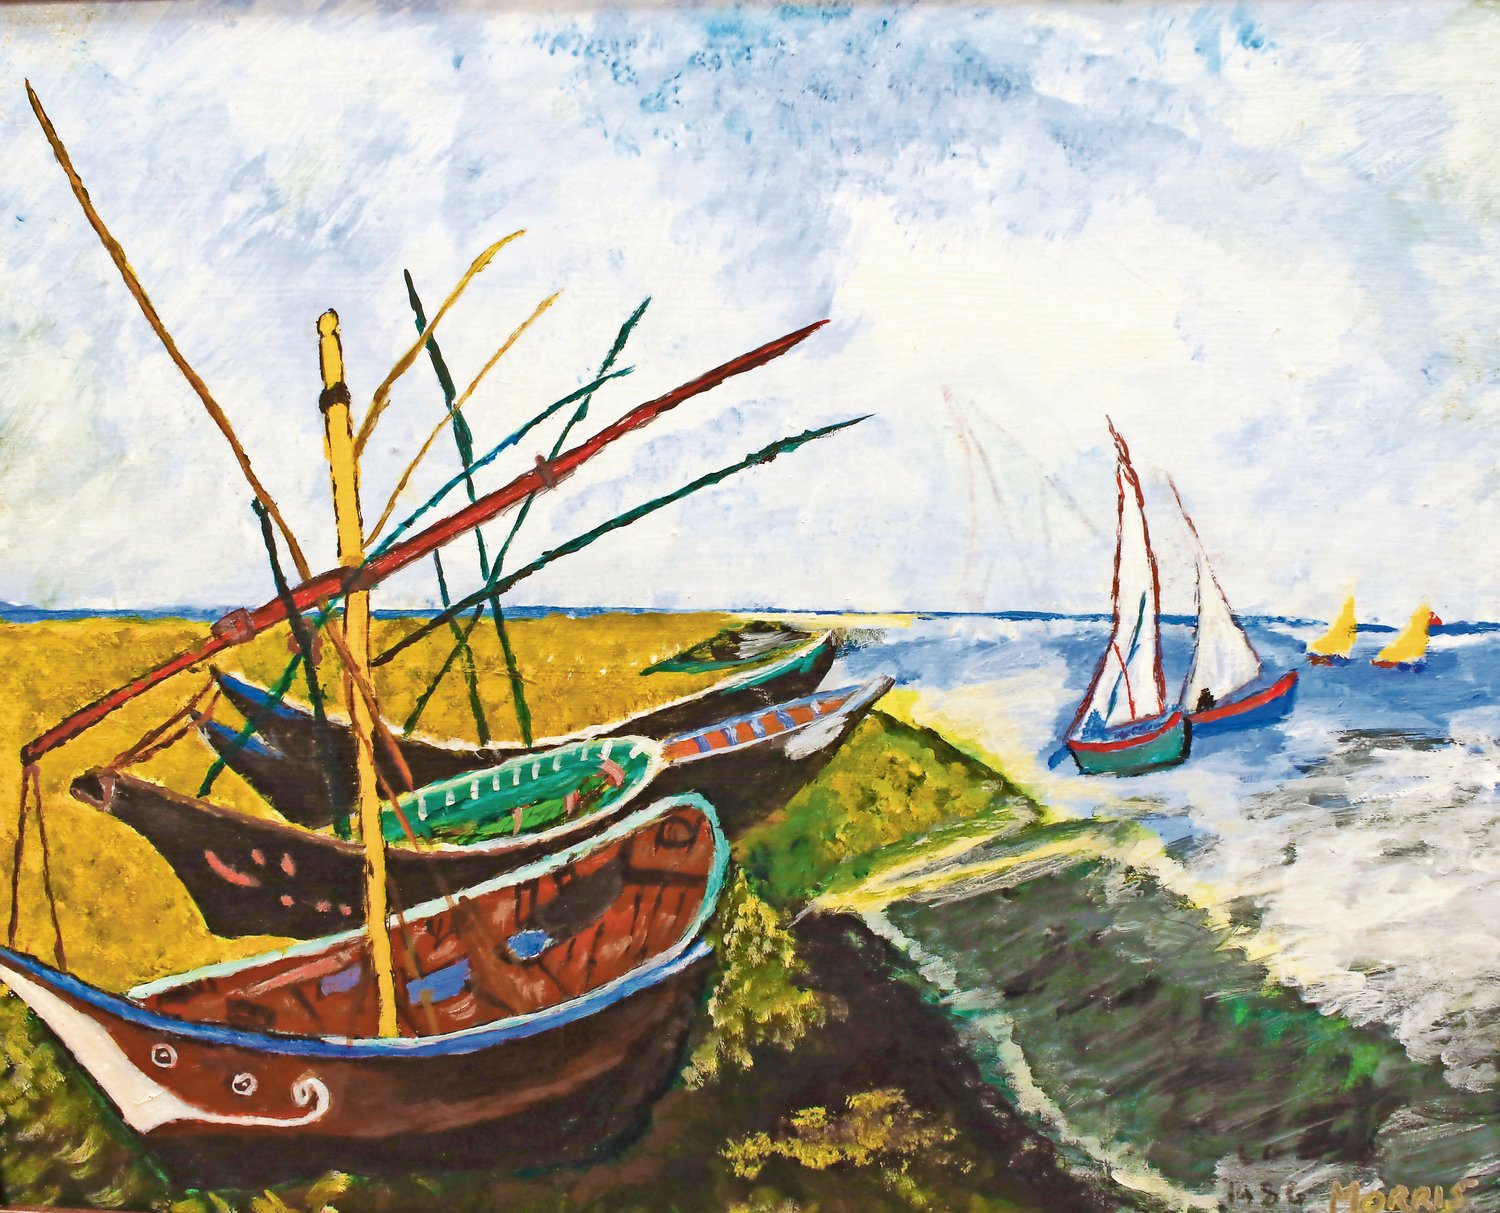 Morris reproduced this picture of boats on a beach in 1986.